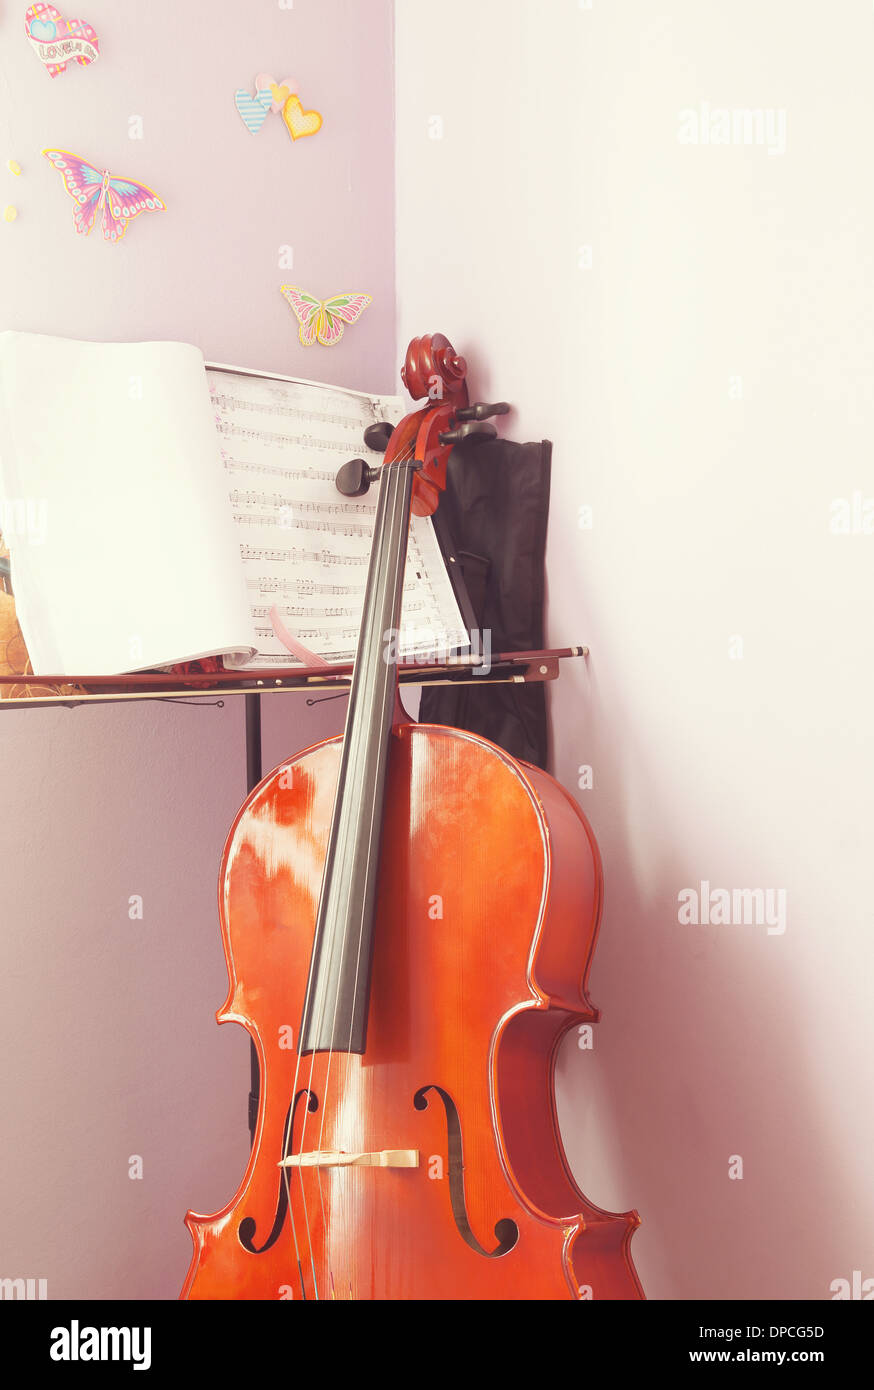 Corner of a child's room with cello and scripts ready for practice. - Stock Image